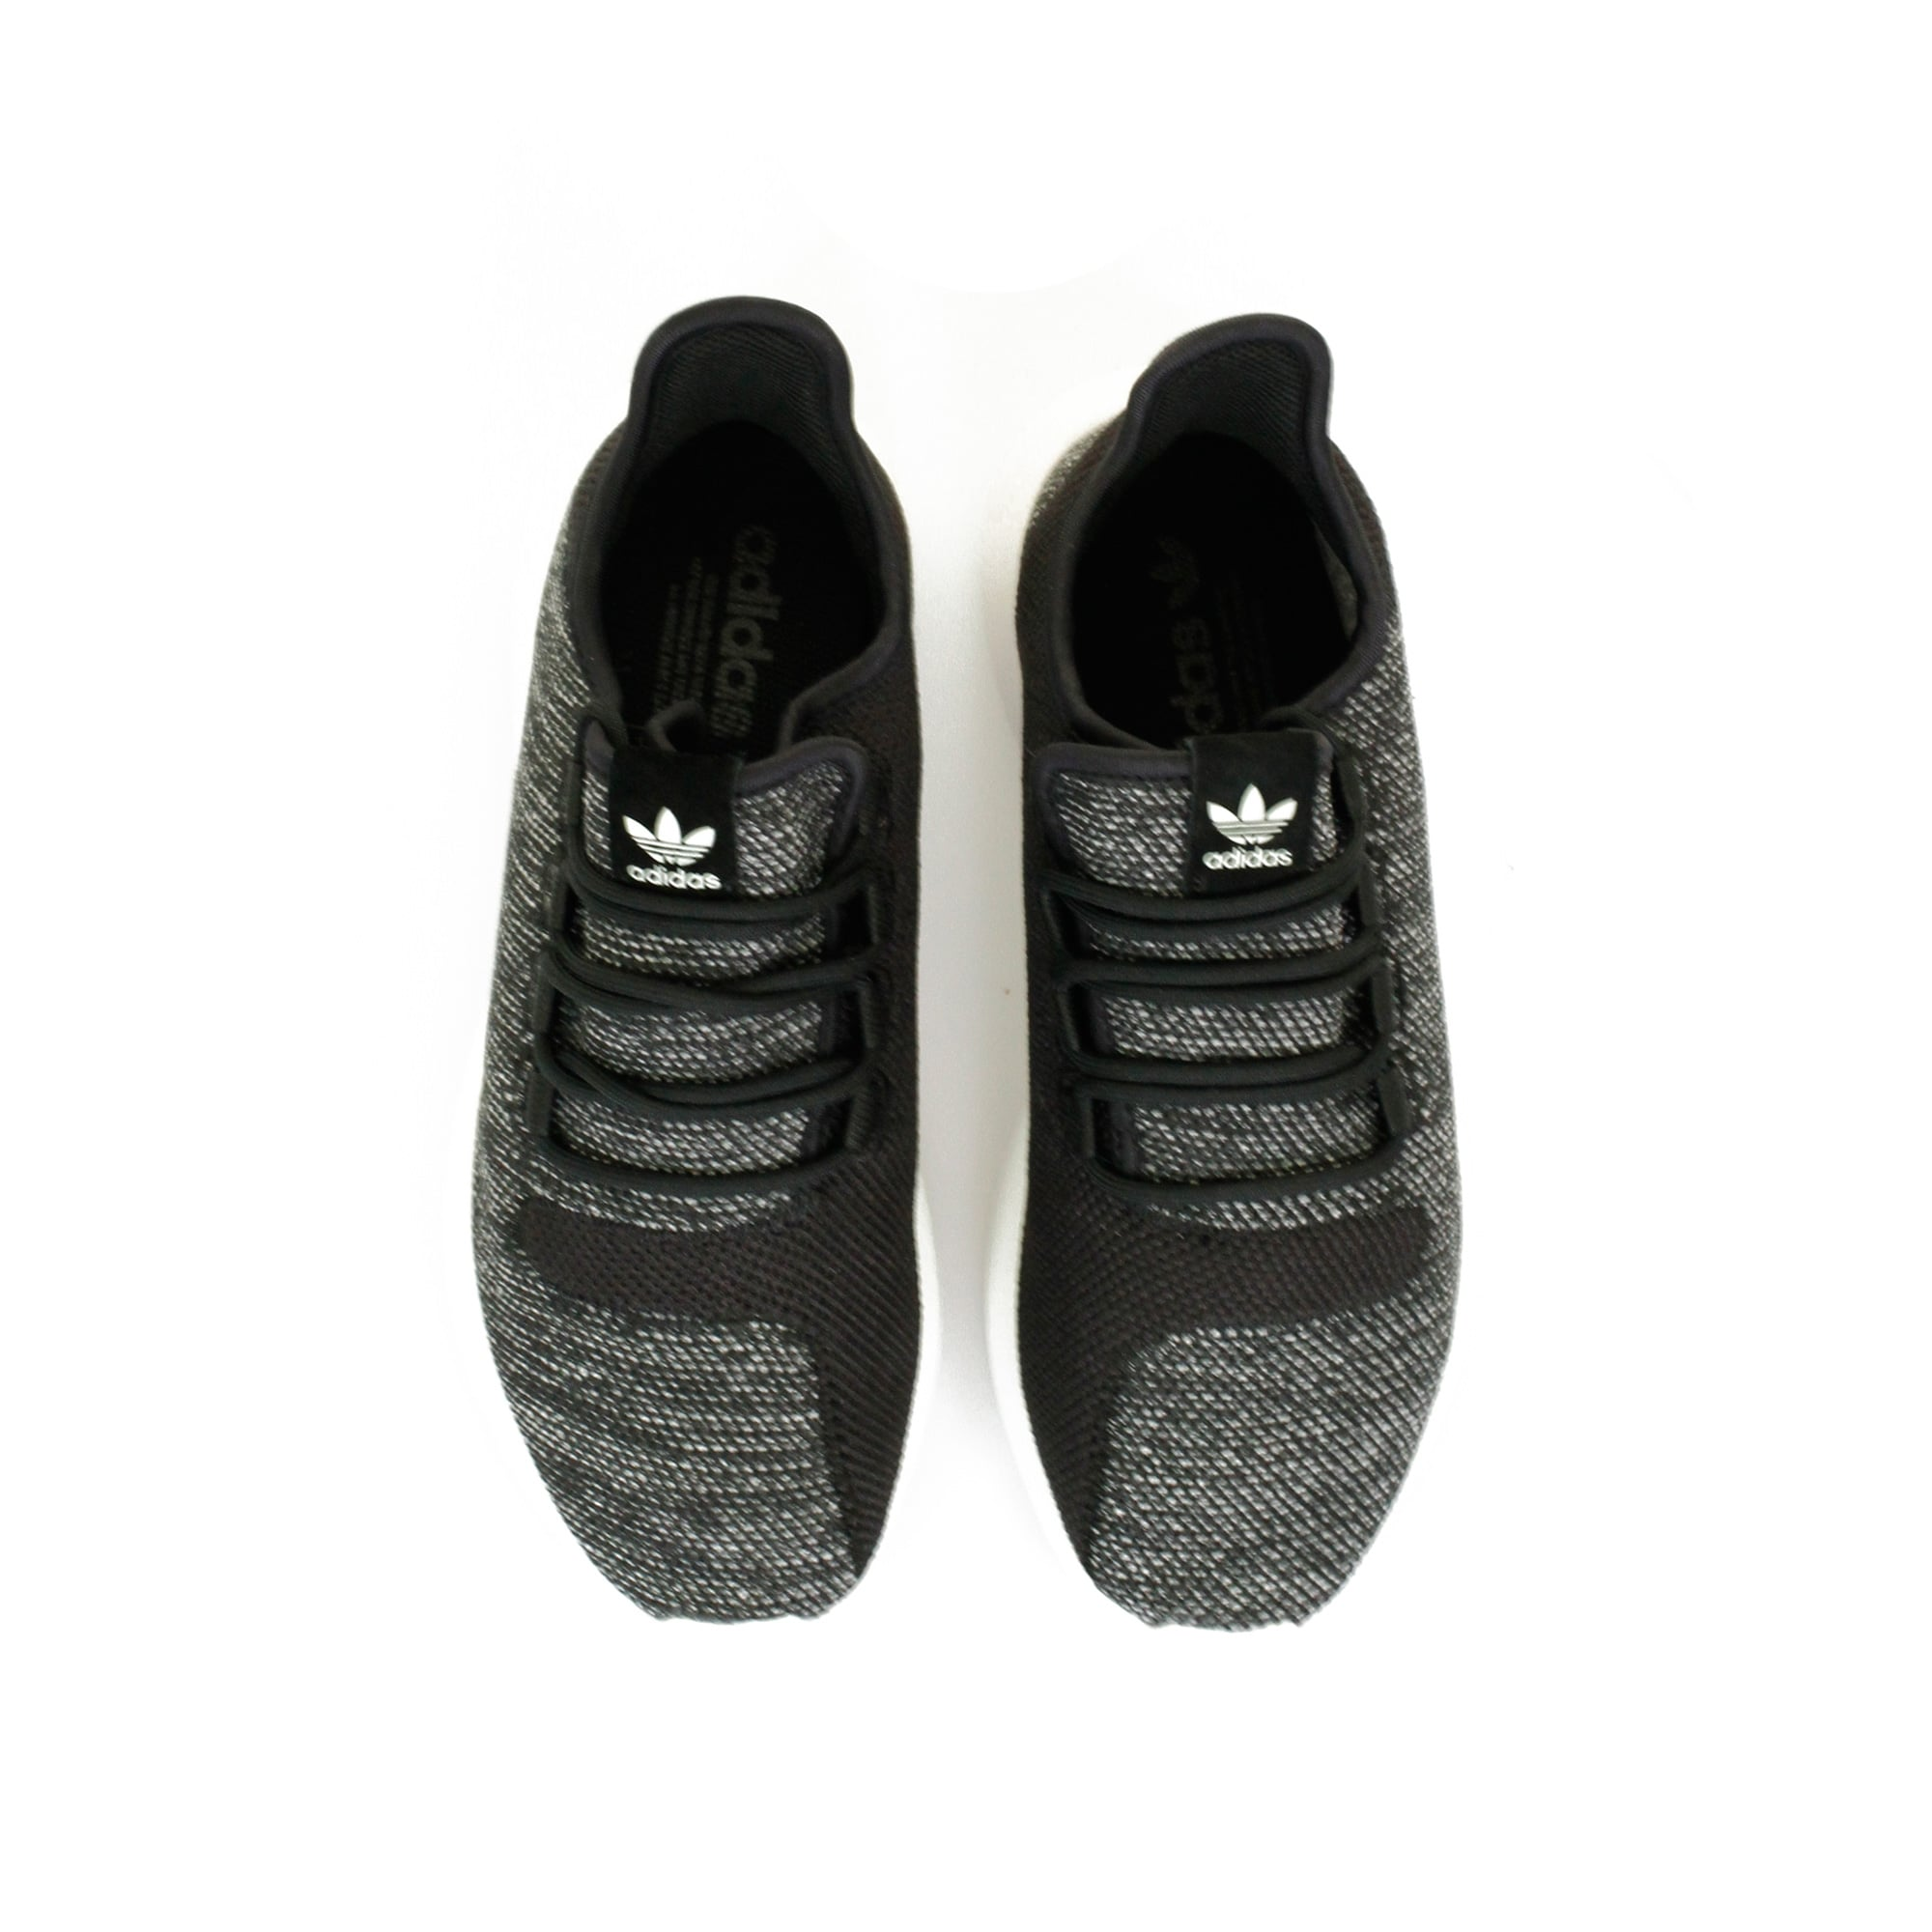 Adidas Originals Tubular Shadow Knit Black Shoe BB8826